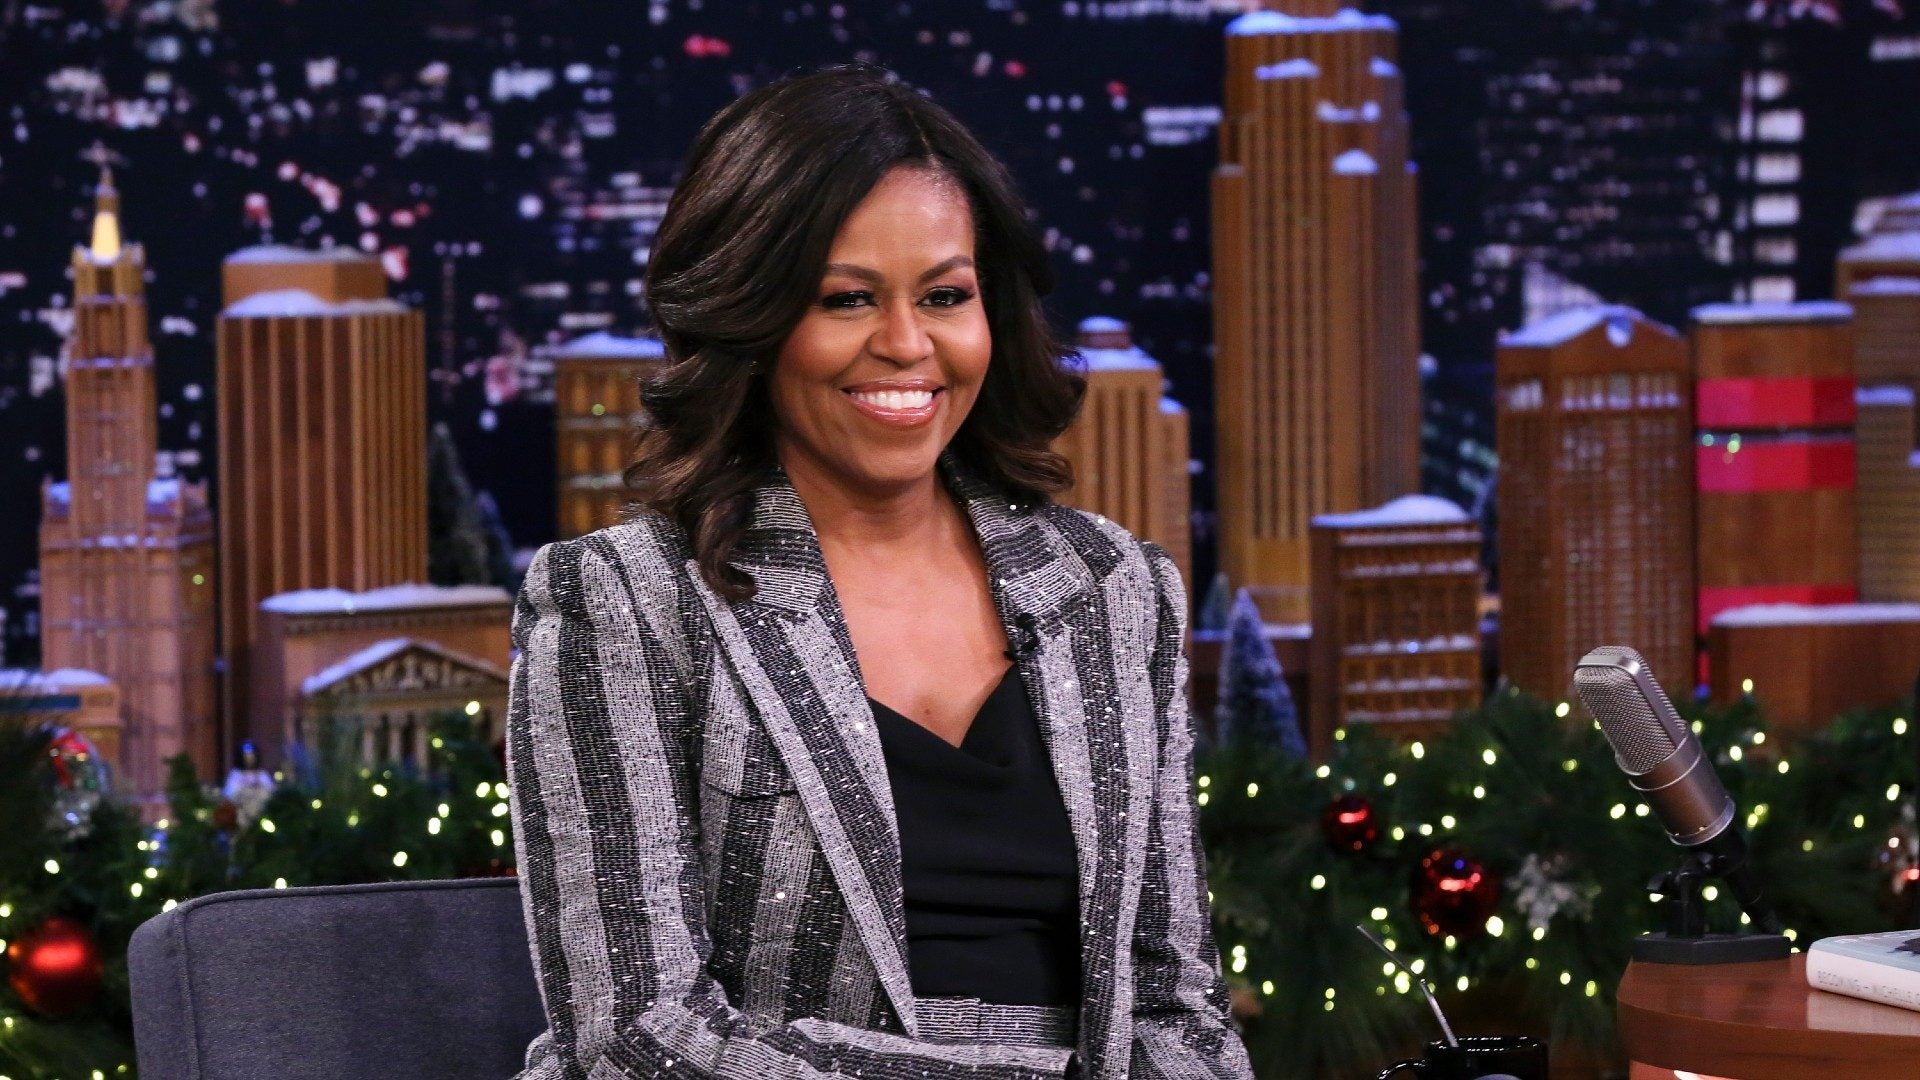 Michelle Obama's Makeup Artist On The Dos And Don'ts Of Tool Cleaning